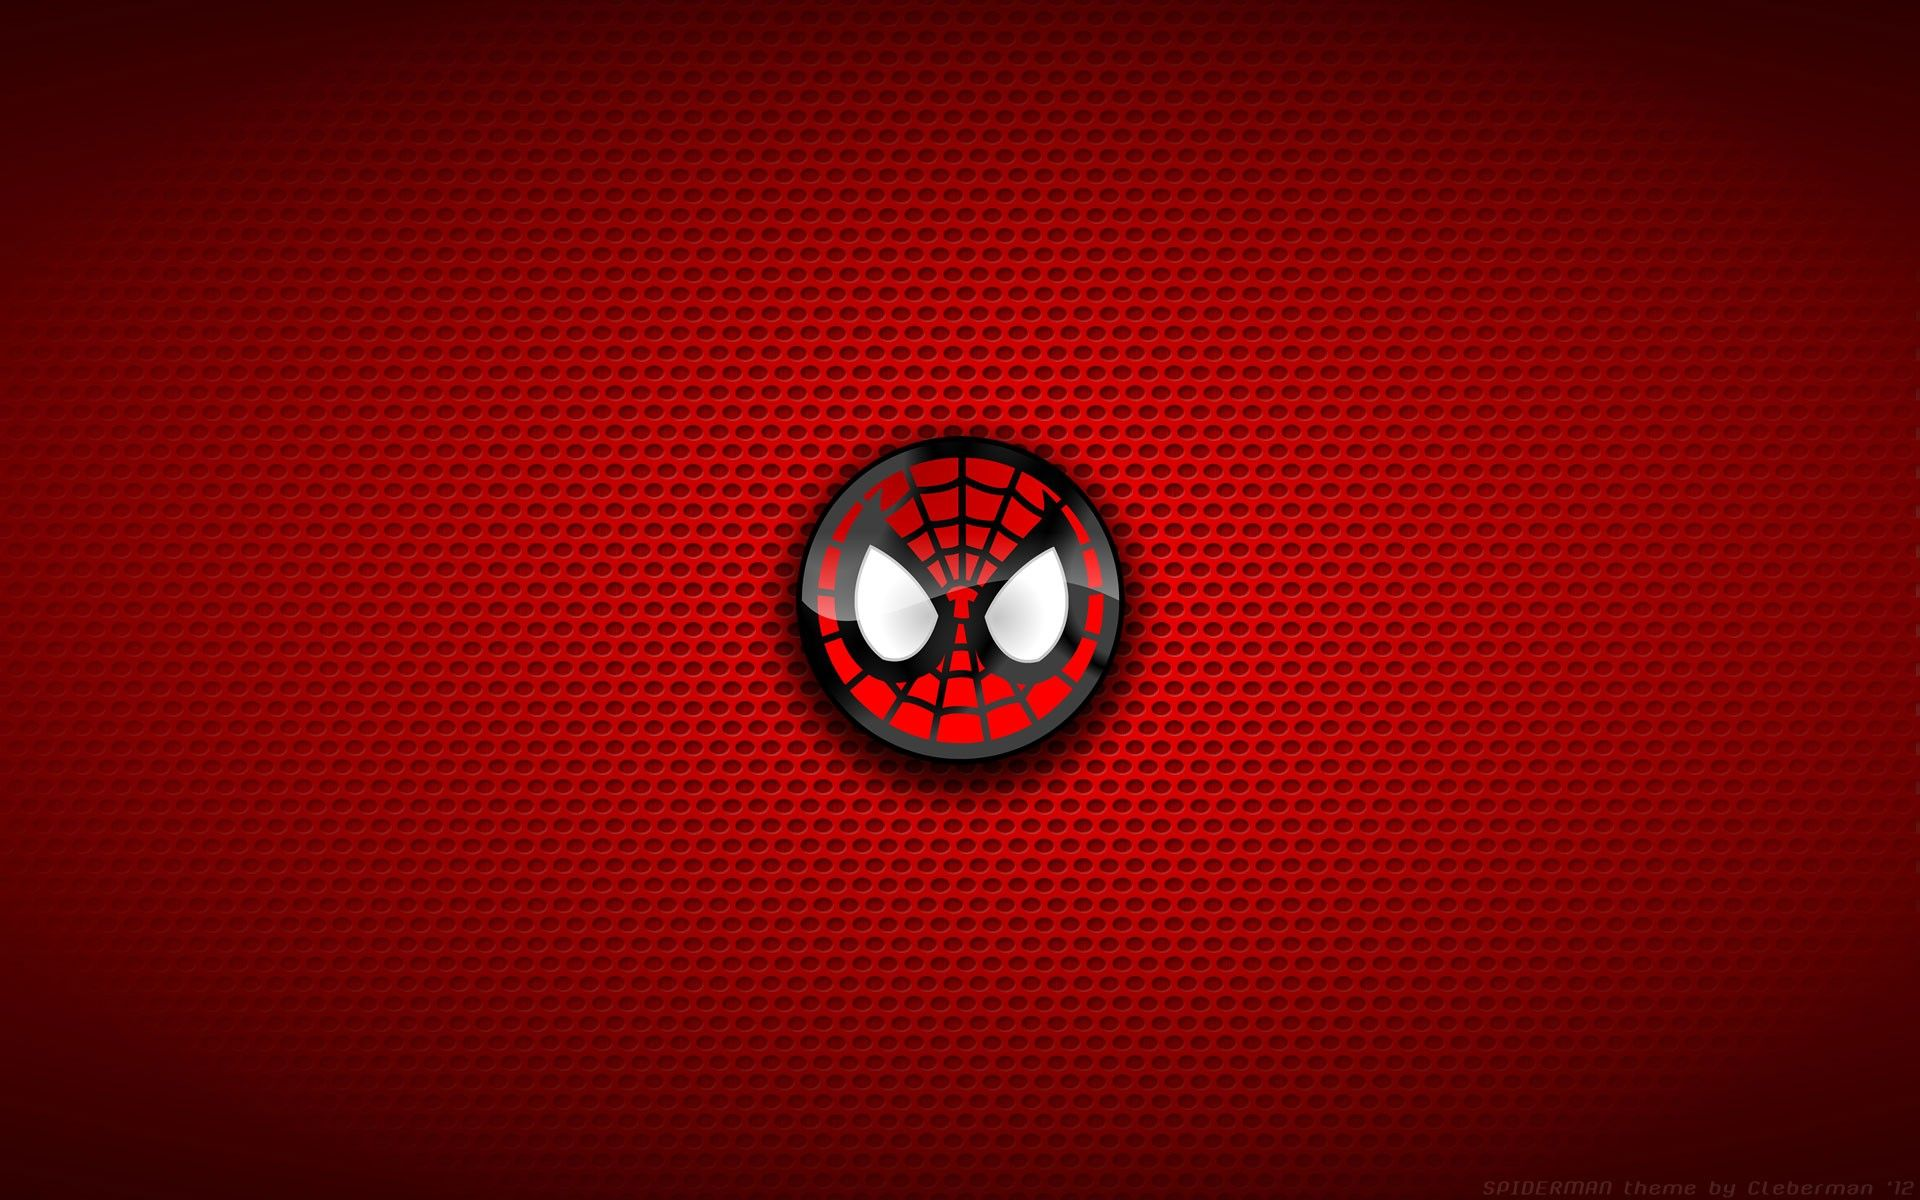 funny stuff about animals nature spiderman logo wallpaper hd 1080p